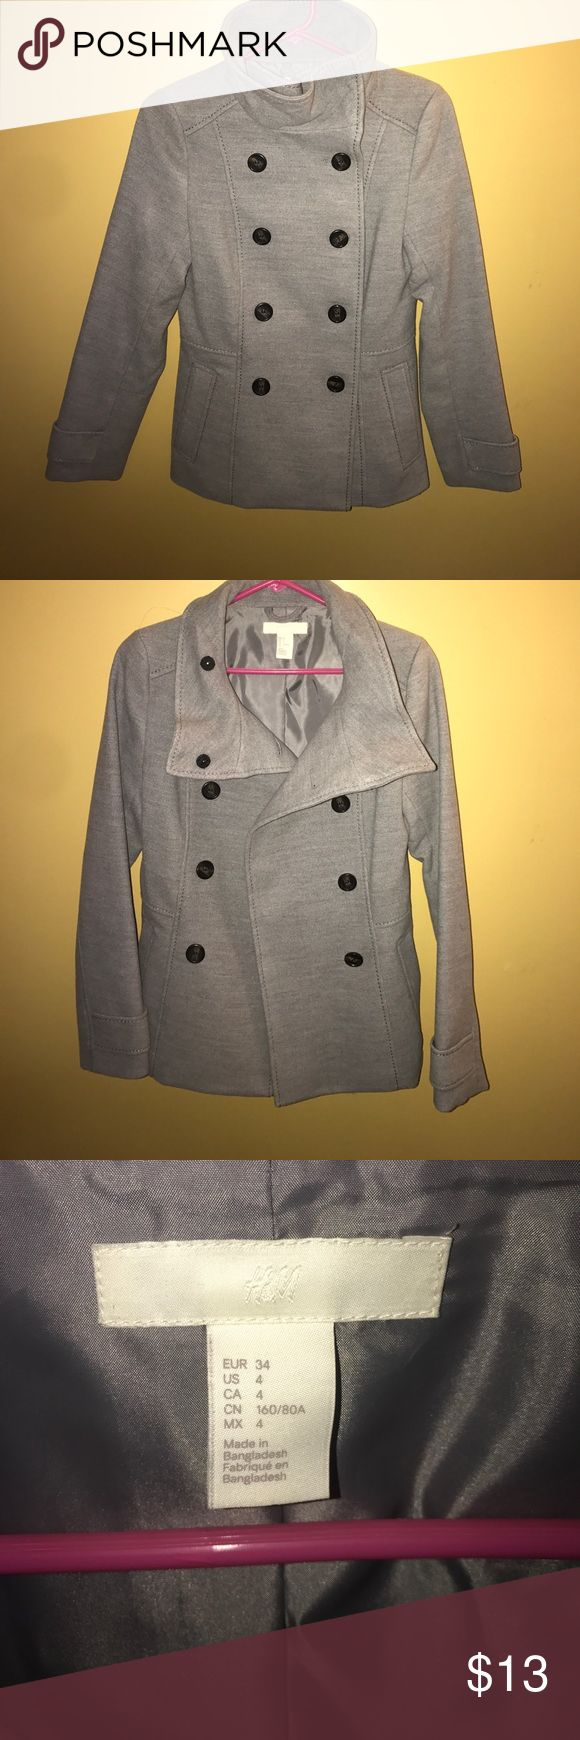 Grey pea coat Perfect condition, brand new without tags grey pea coat. Not stains or rips. Best offer 😎 H&M Jackets & Coats Pea Coats